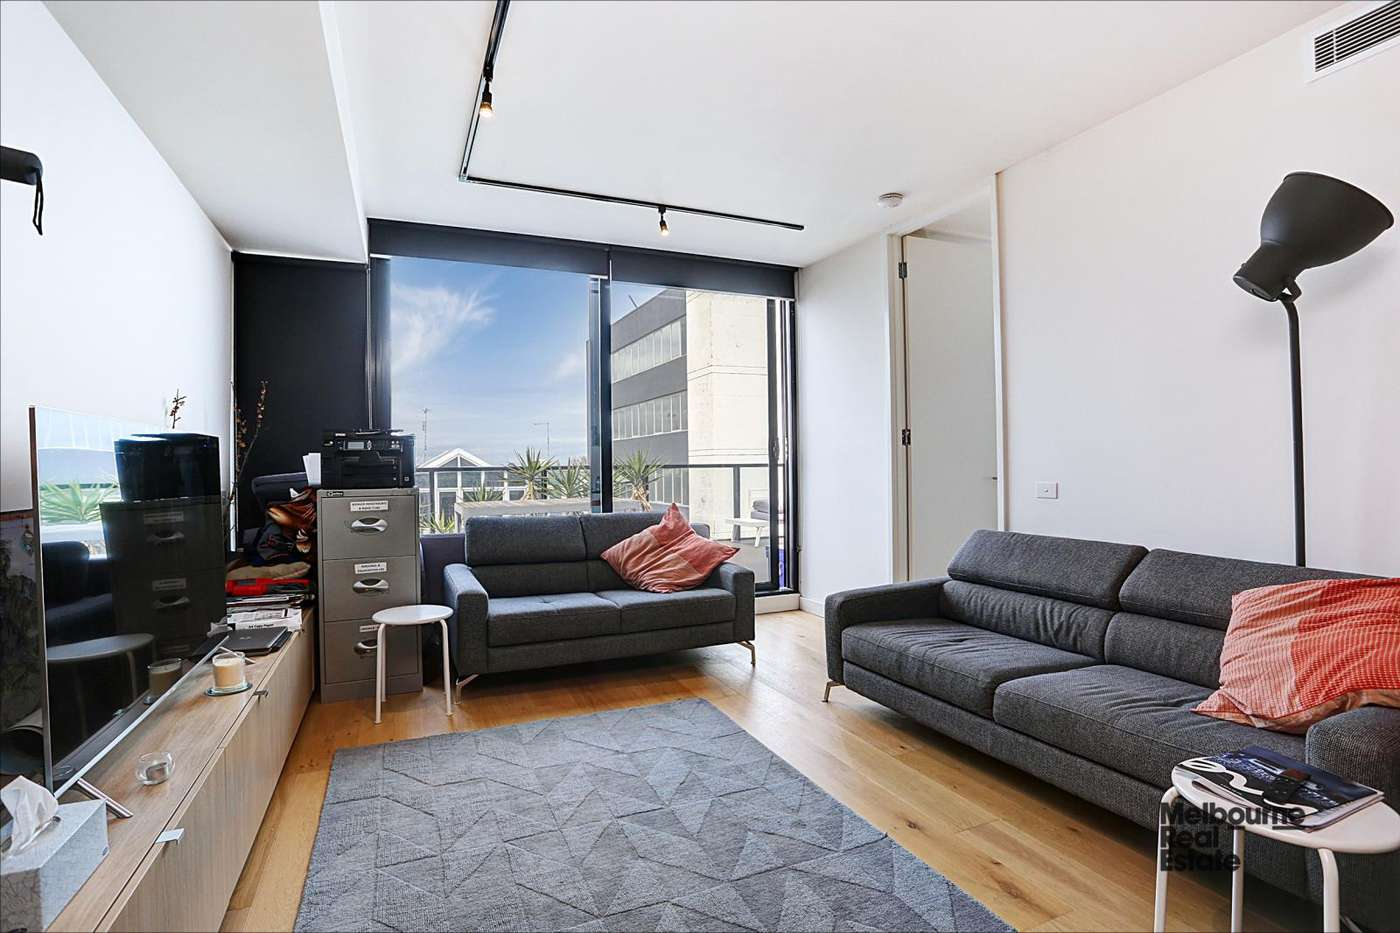 Main view of Homely apartment listing, 1704/97 Palmerston Crescent, South Melbourne, VIC 3205